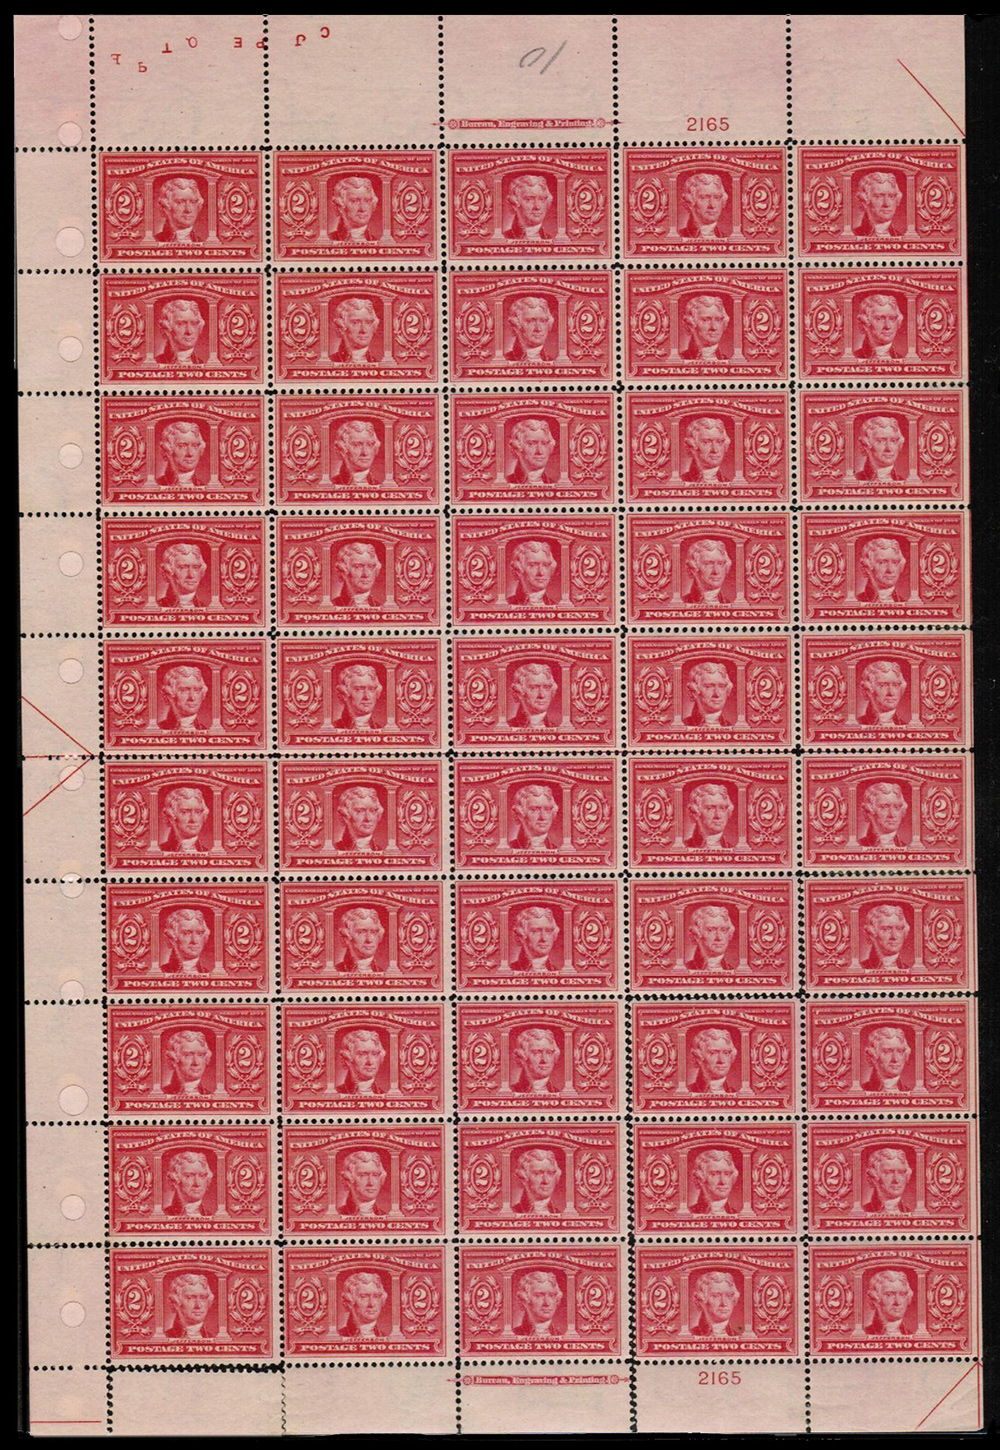 scotts 324 sheet  - US Postage Stamps